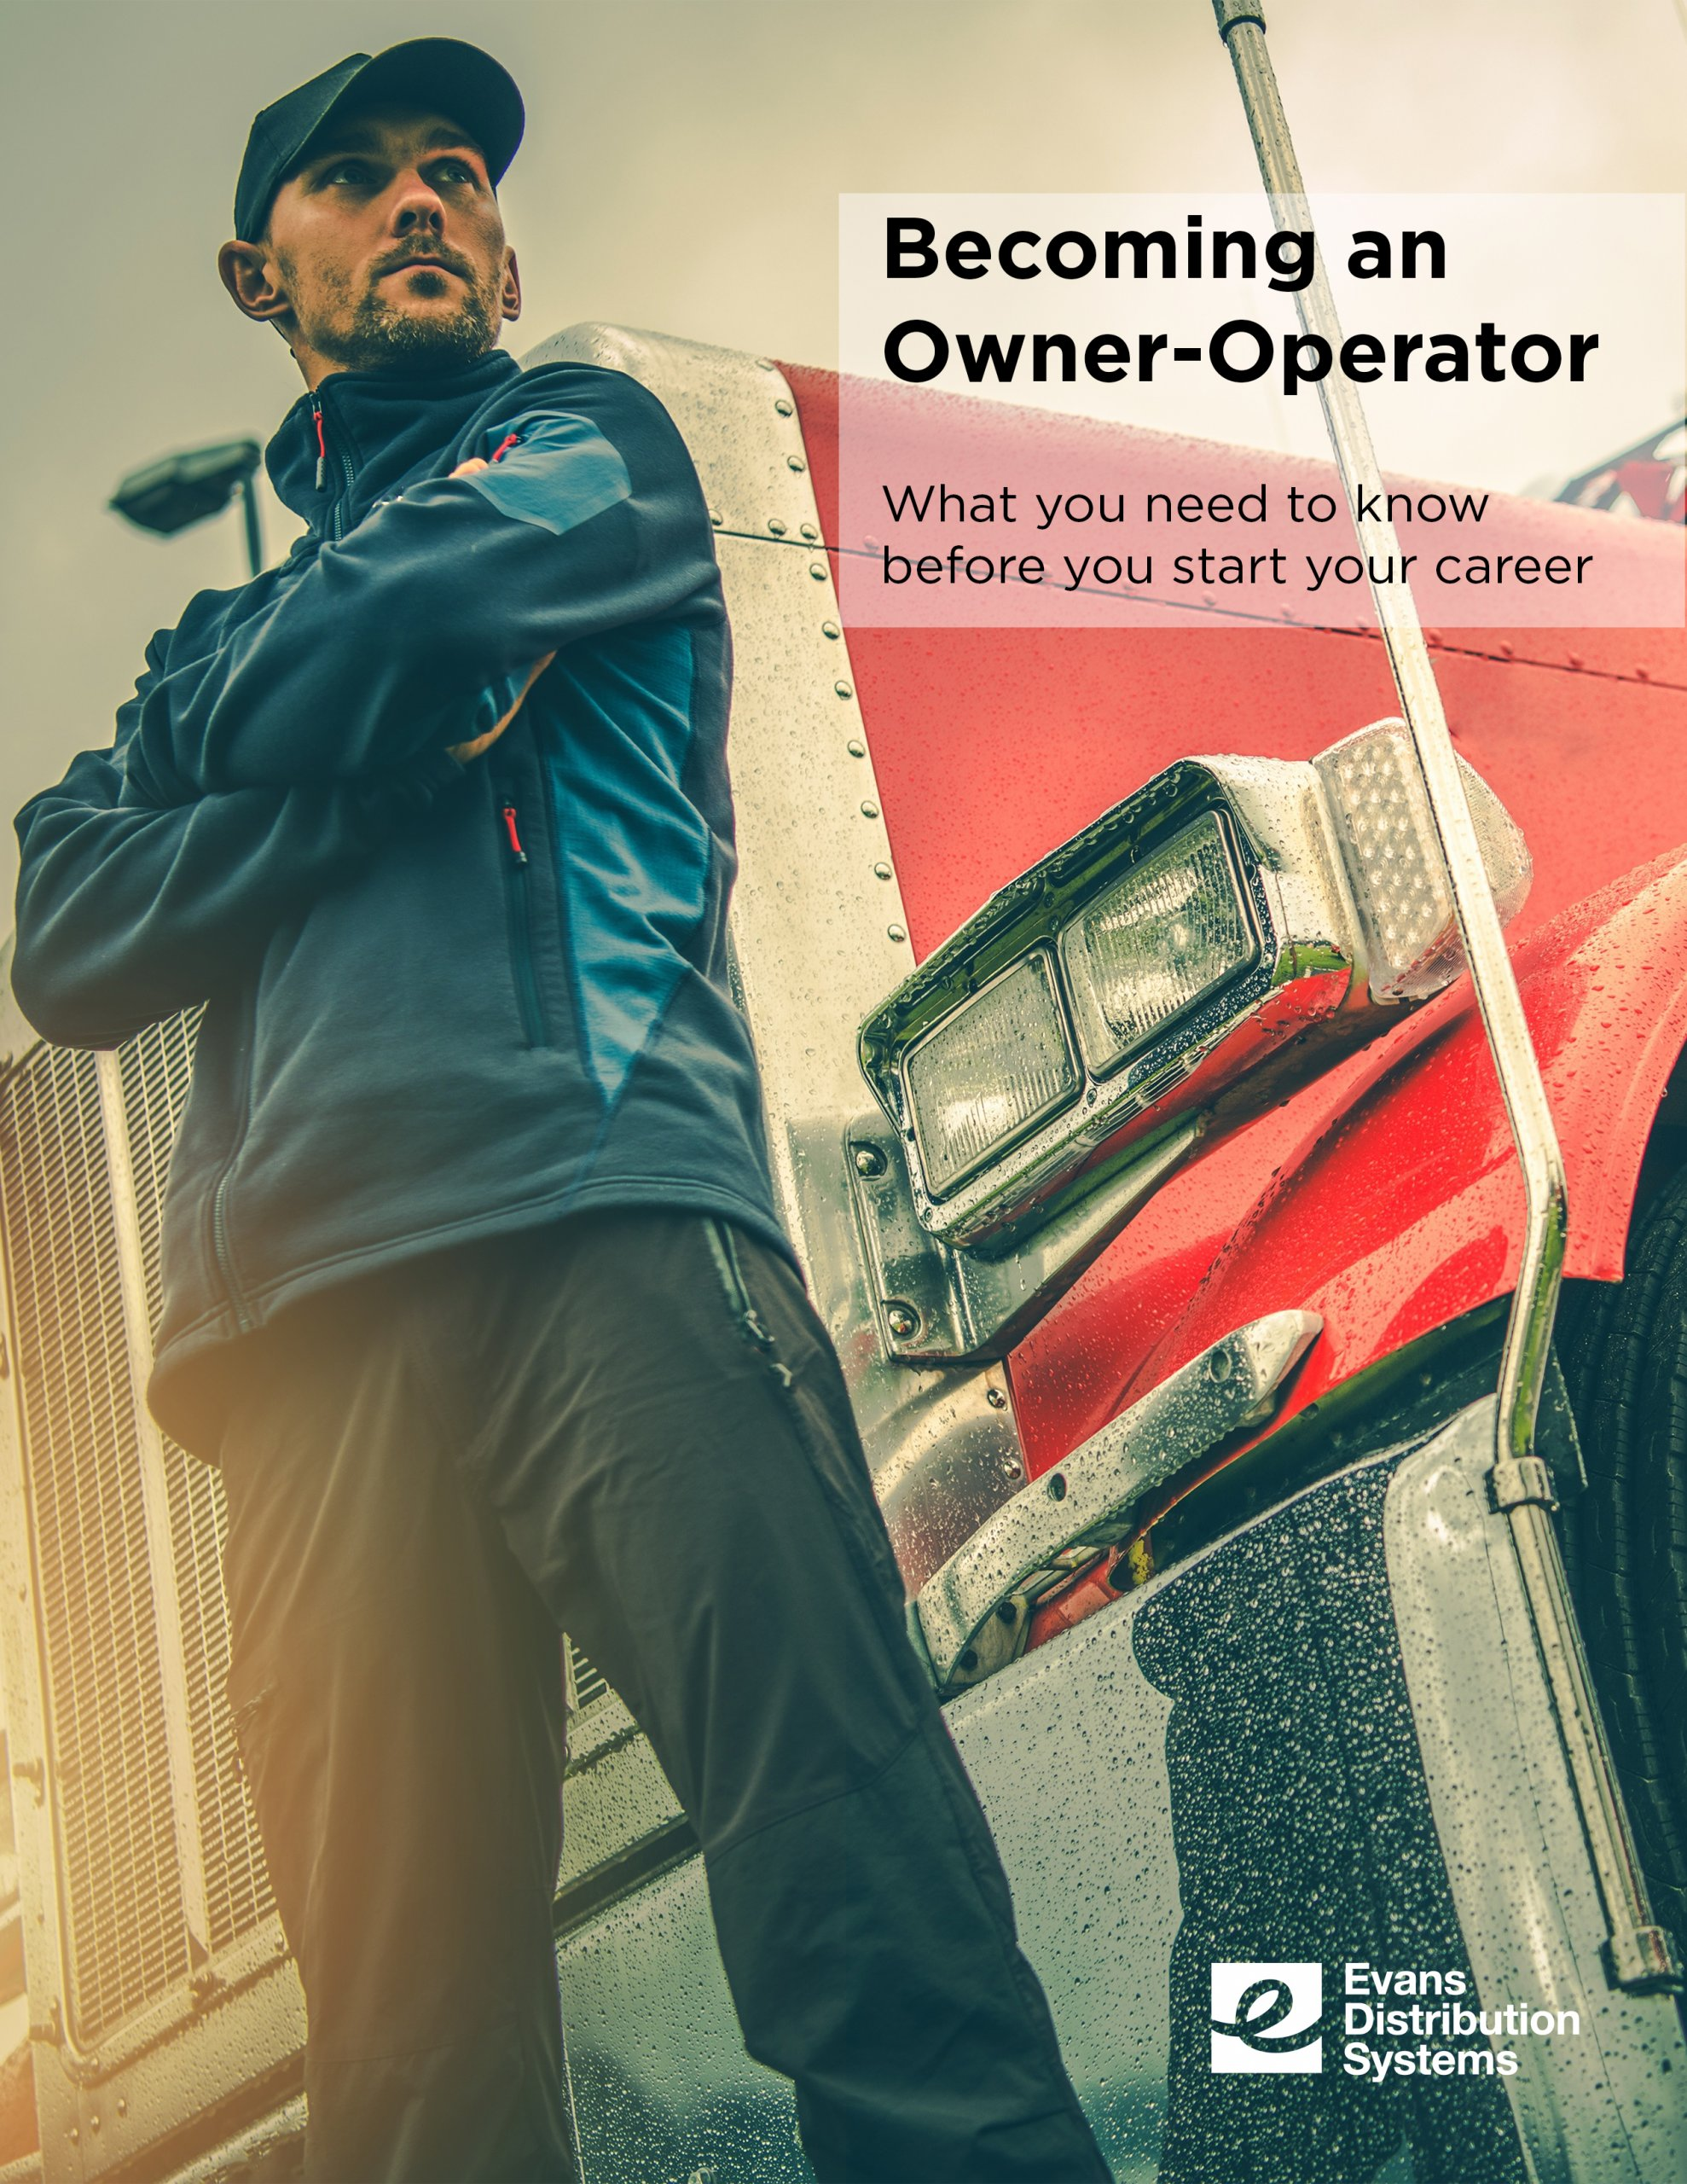 Becoming an Owner-Operator